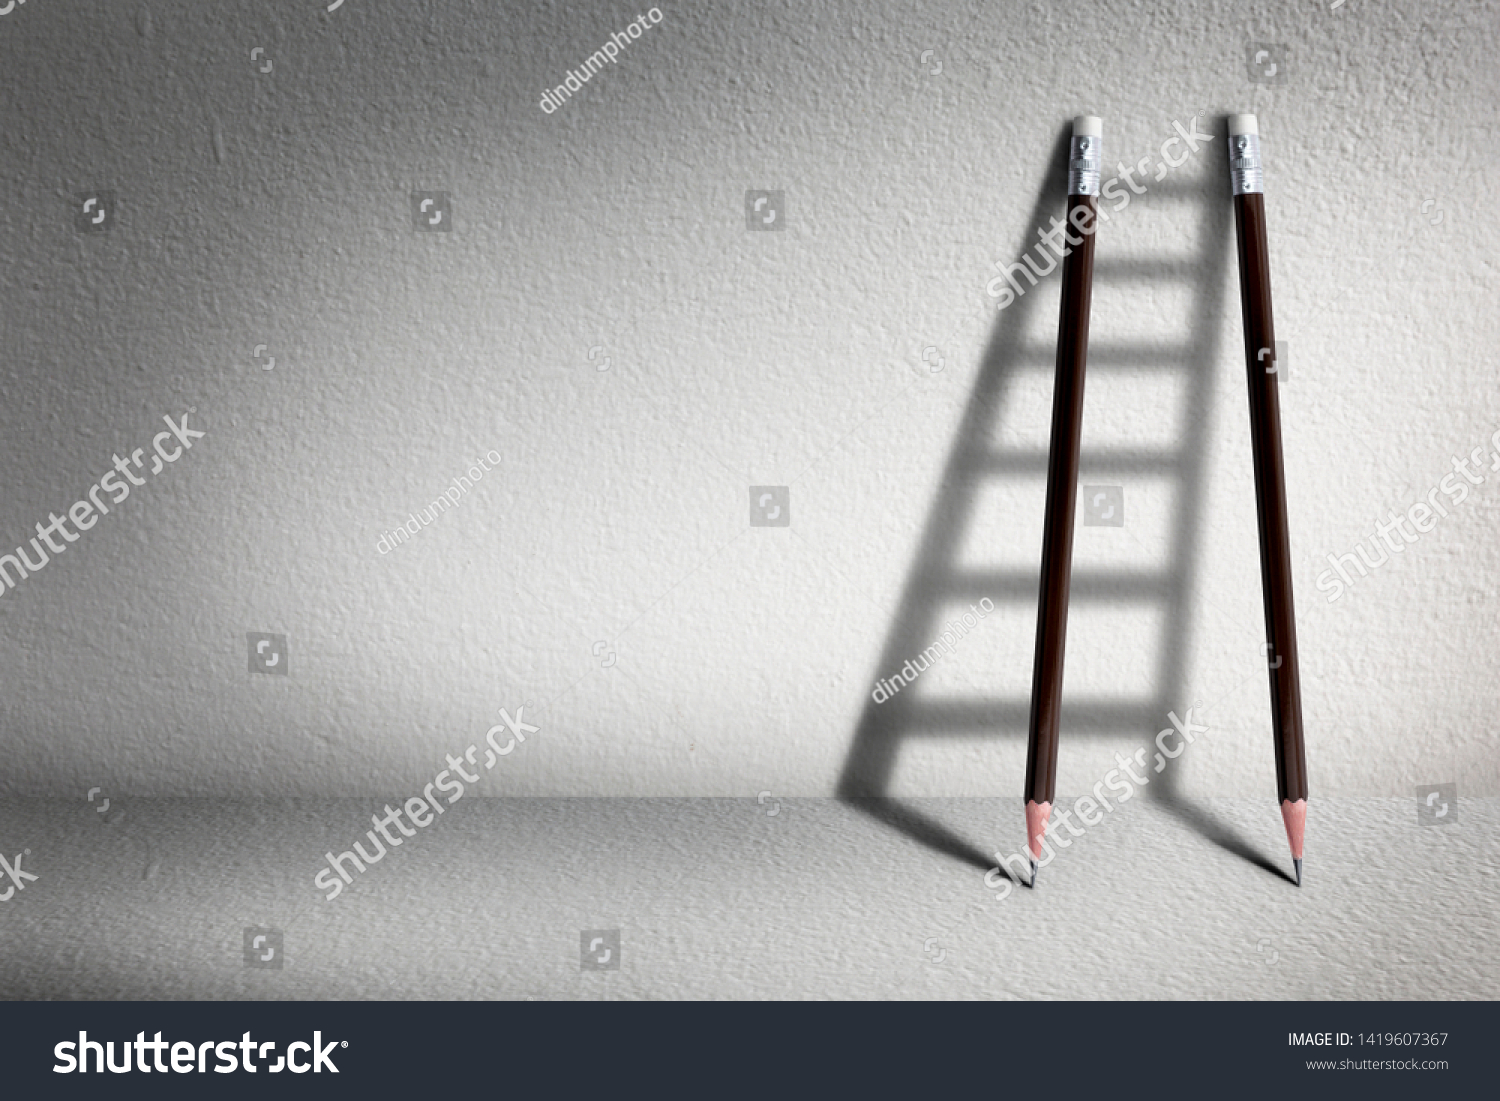 Stairs with pencil for effort and challenge in business to be achievement and successful concept. #1419607367